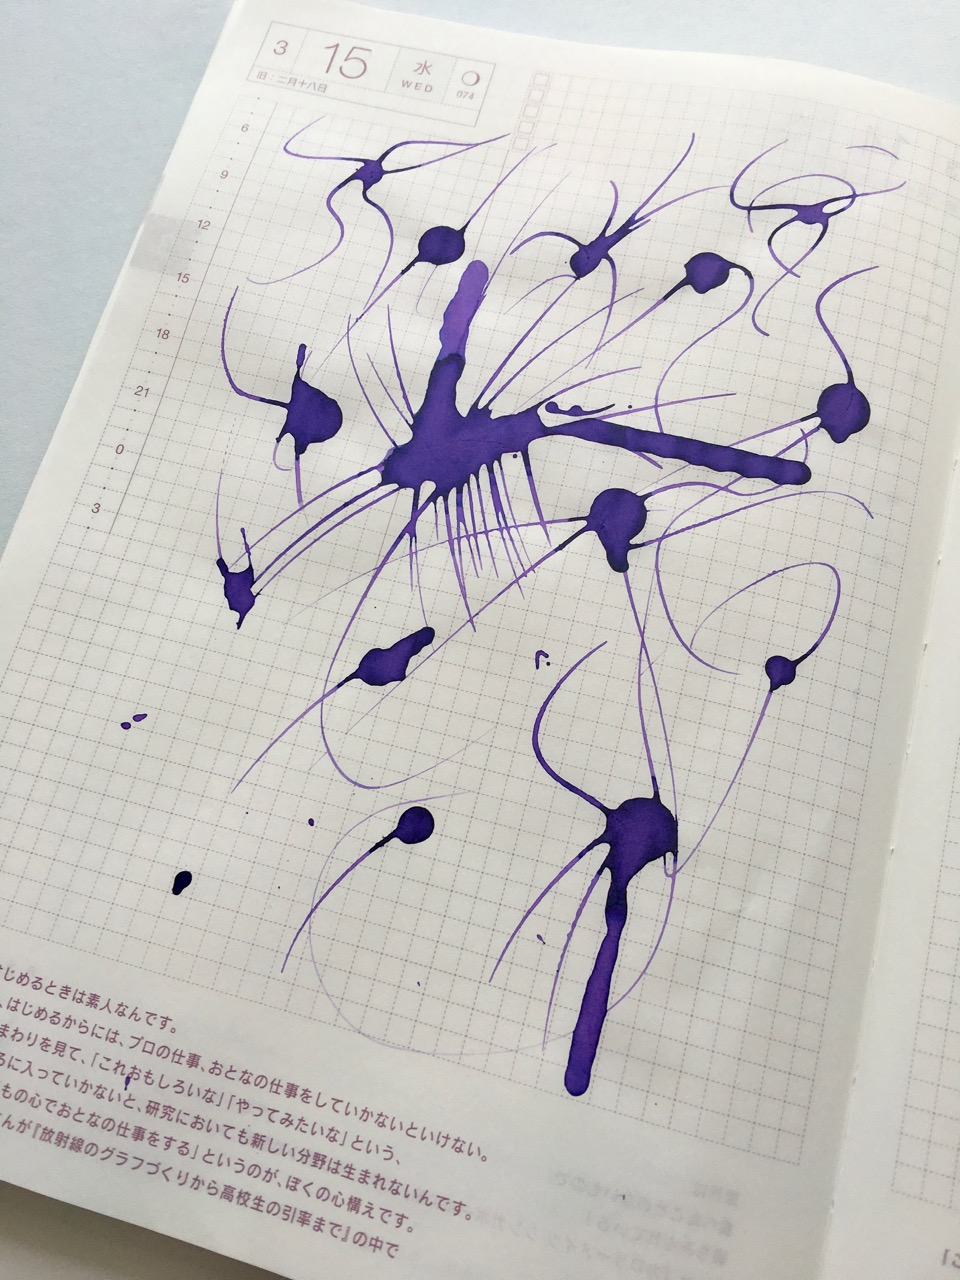 Ink spots in my Hobonichi Techo